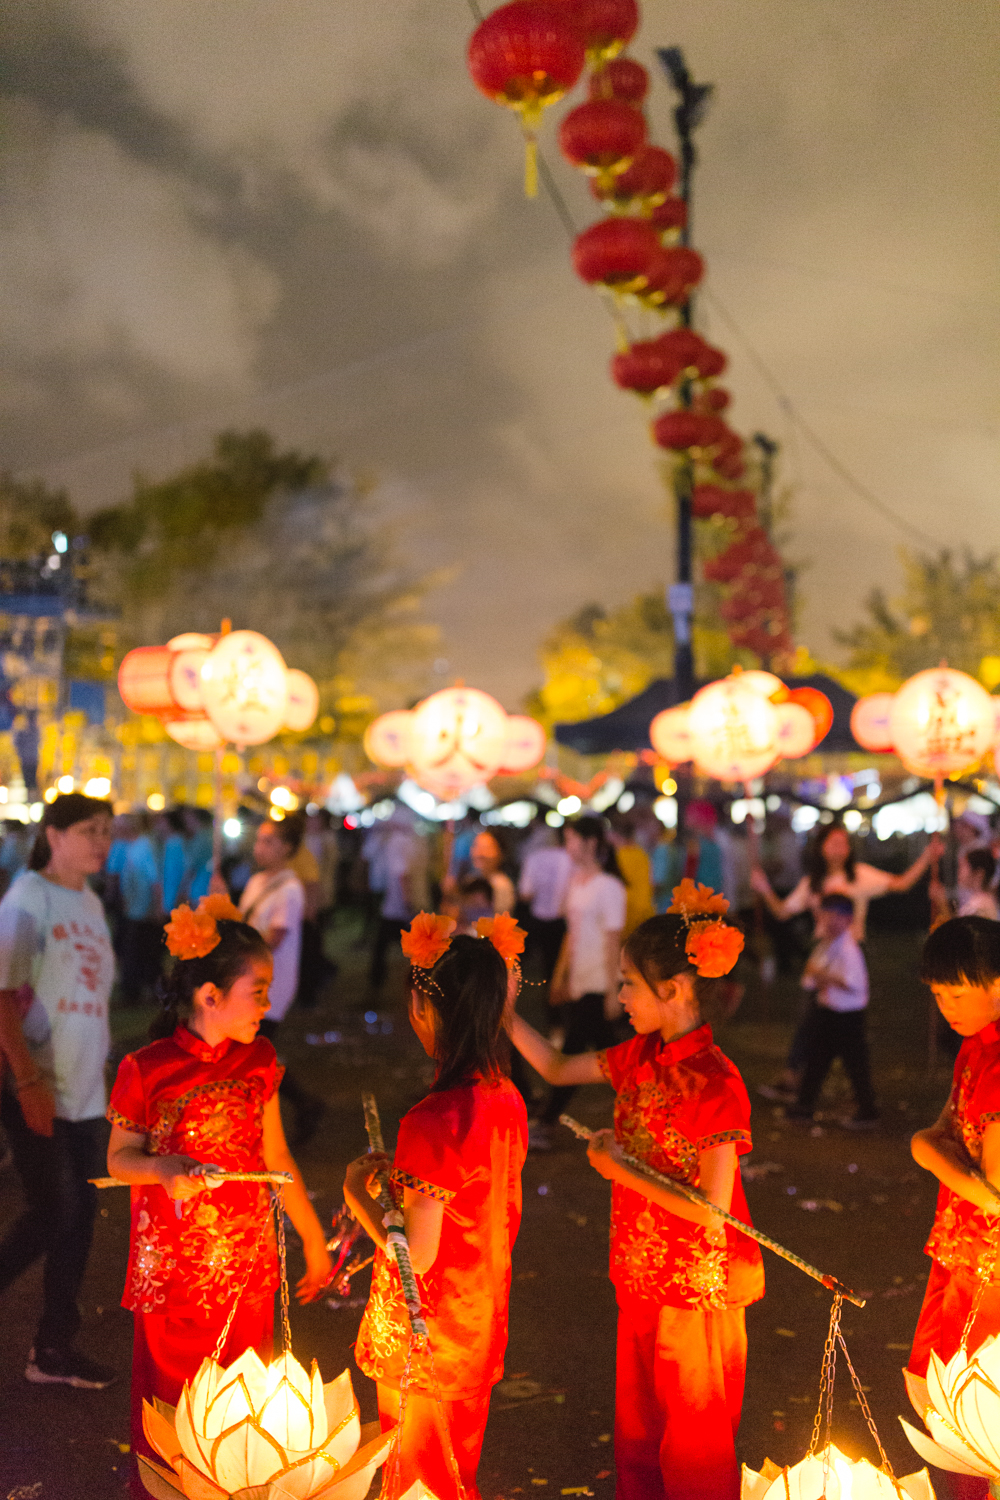 Little girls with lanterns at Tai Hang Fire Dragon Dance | Chinese traditions